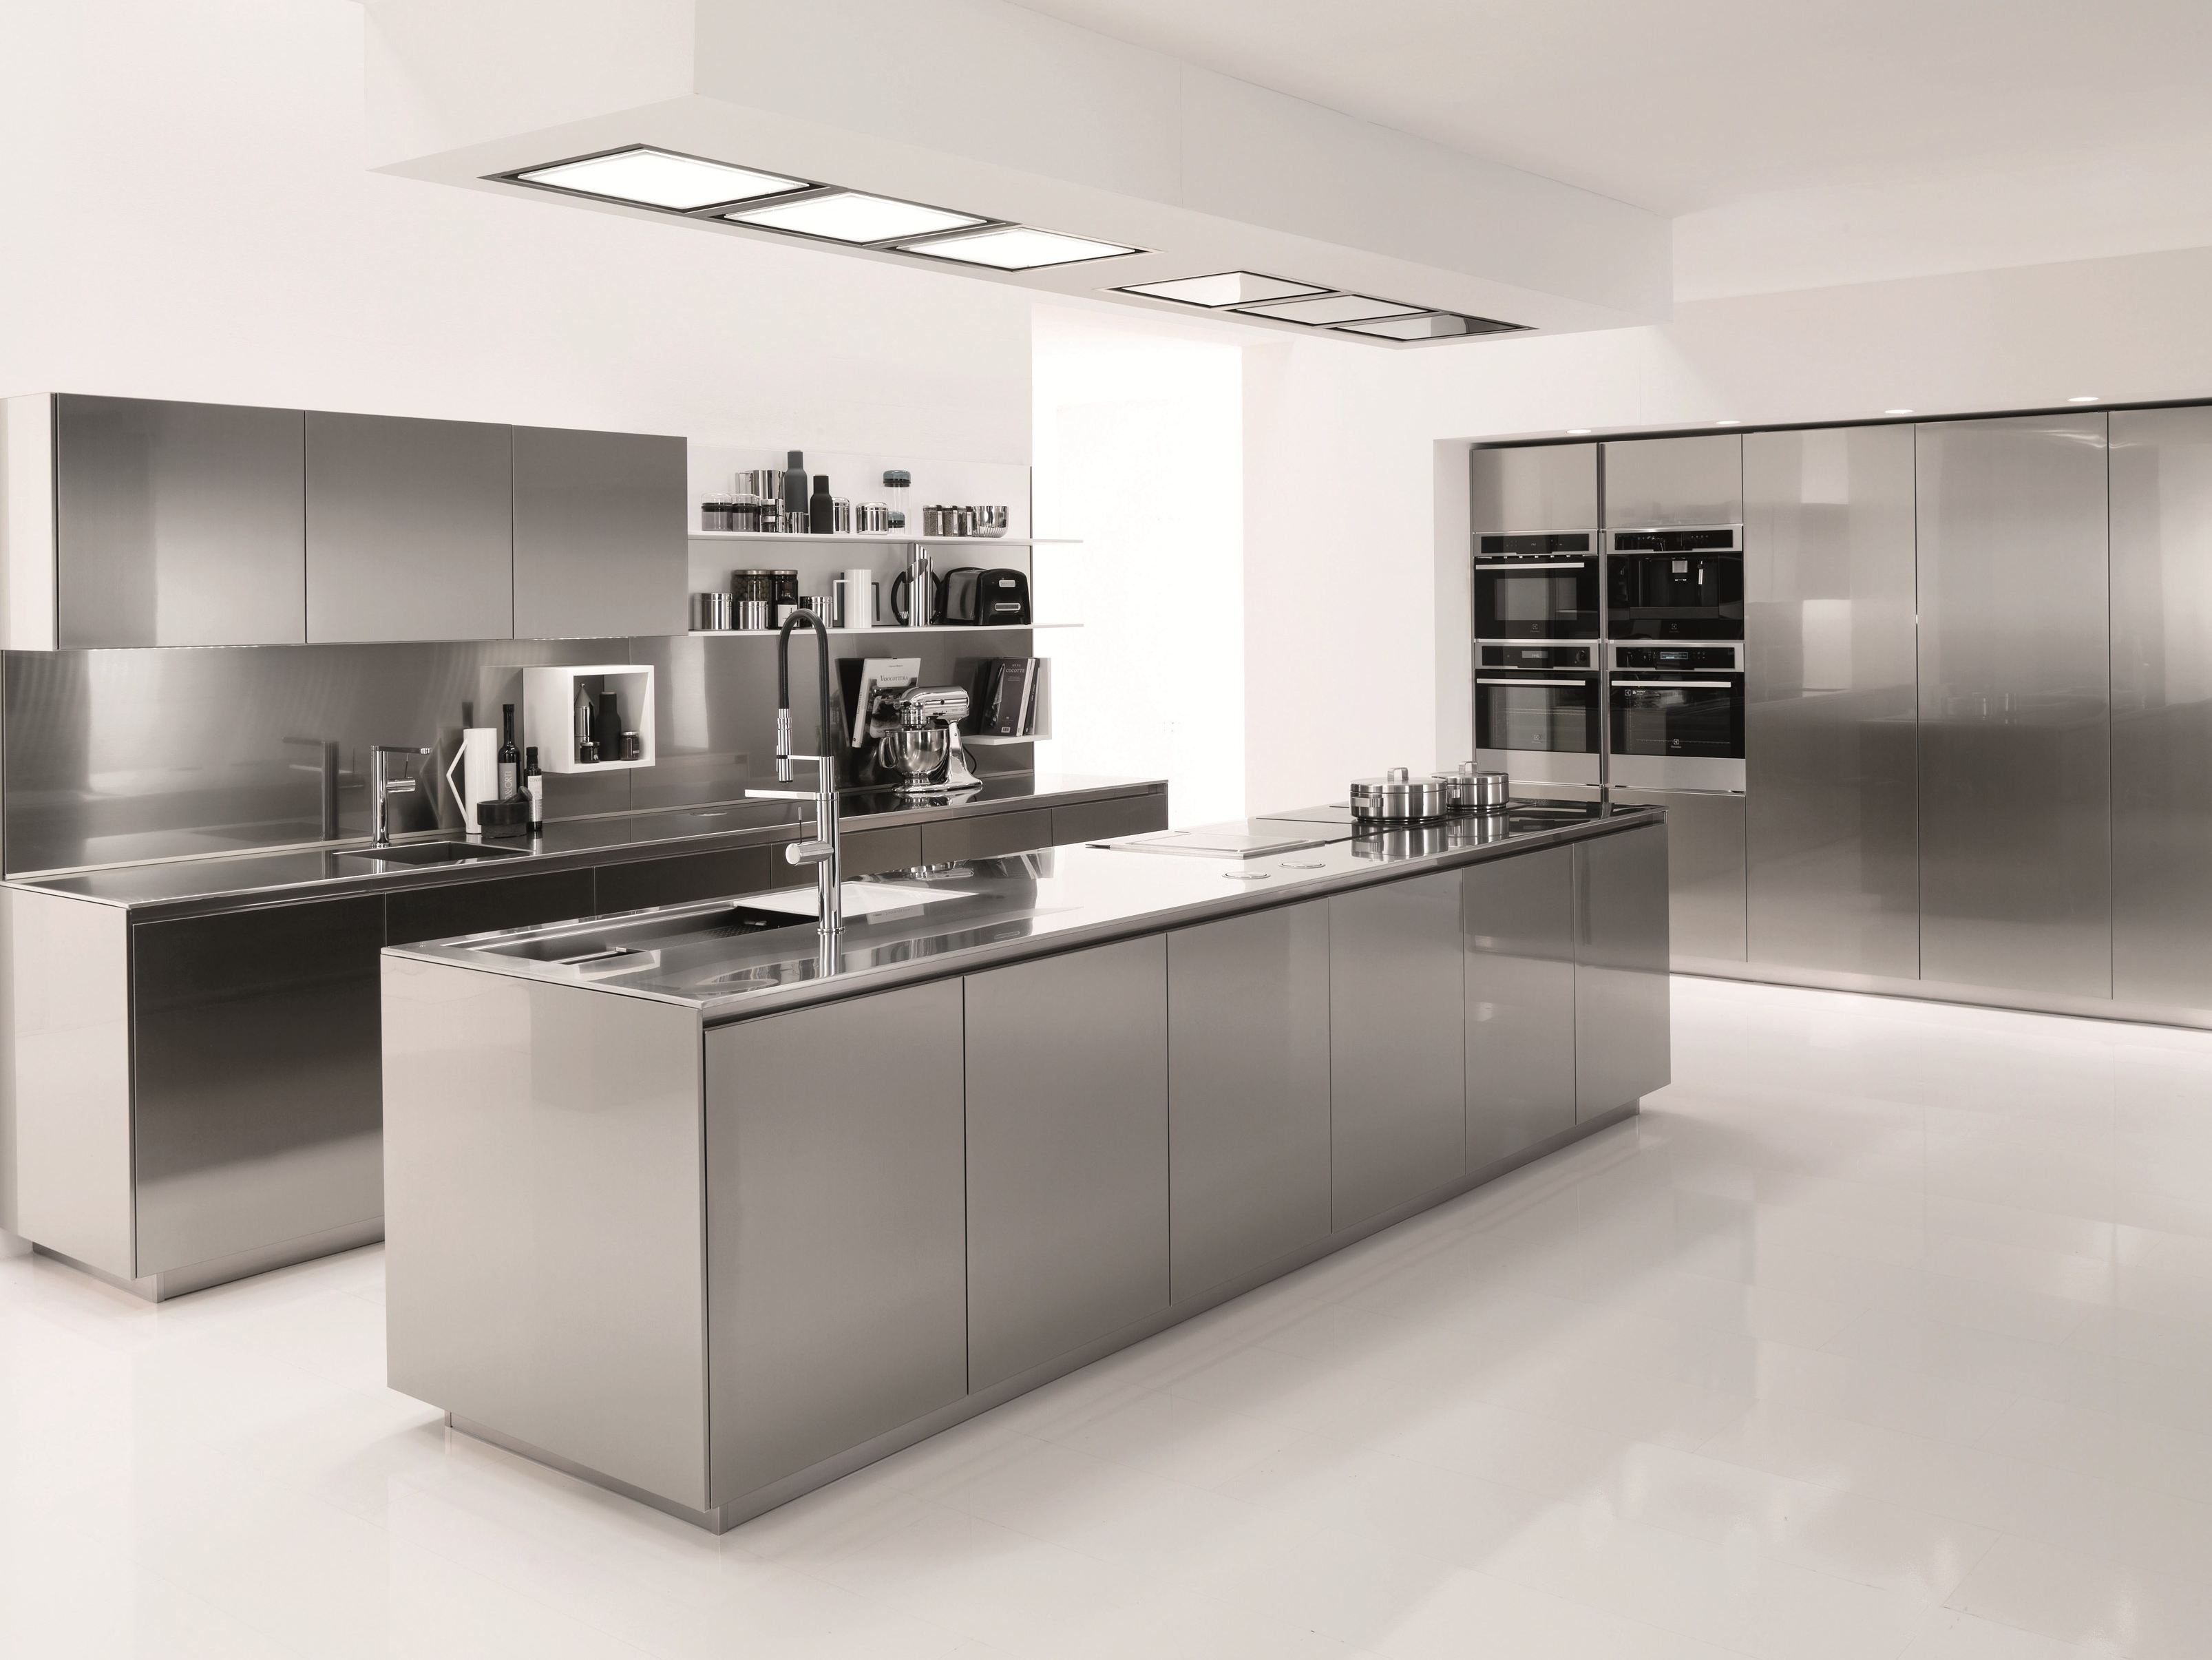 Stainless Steel Kitchens How To Choose The Perfect Kitchen Countertop  Steel Stainless